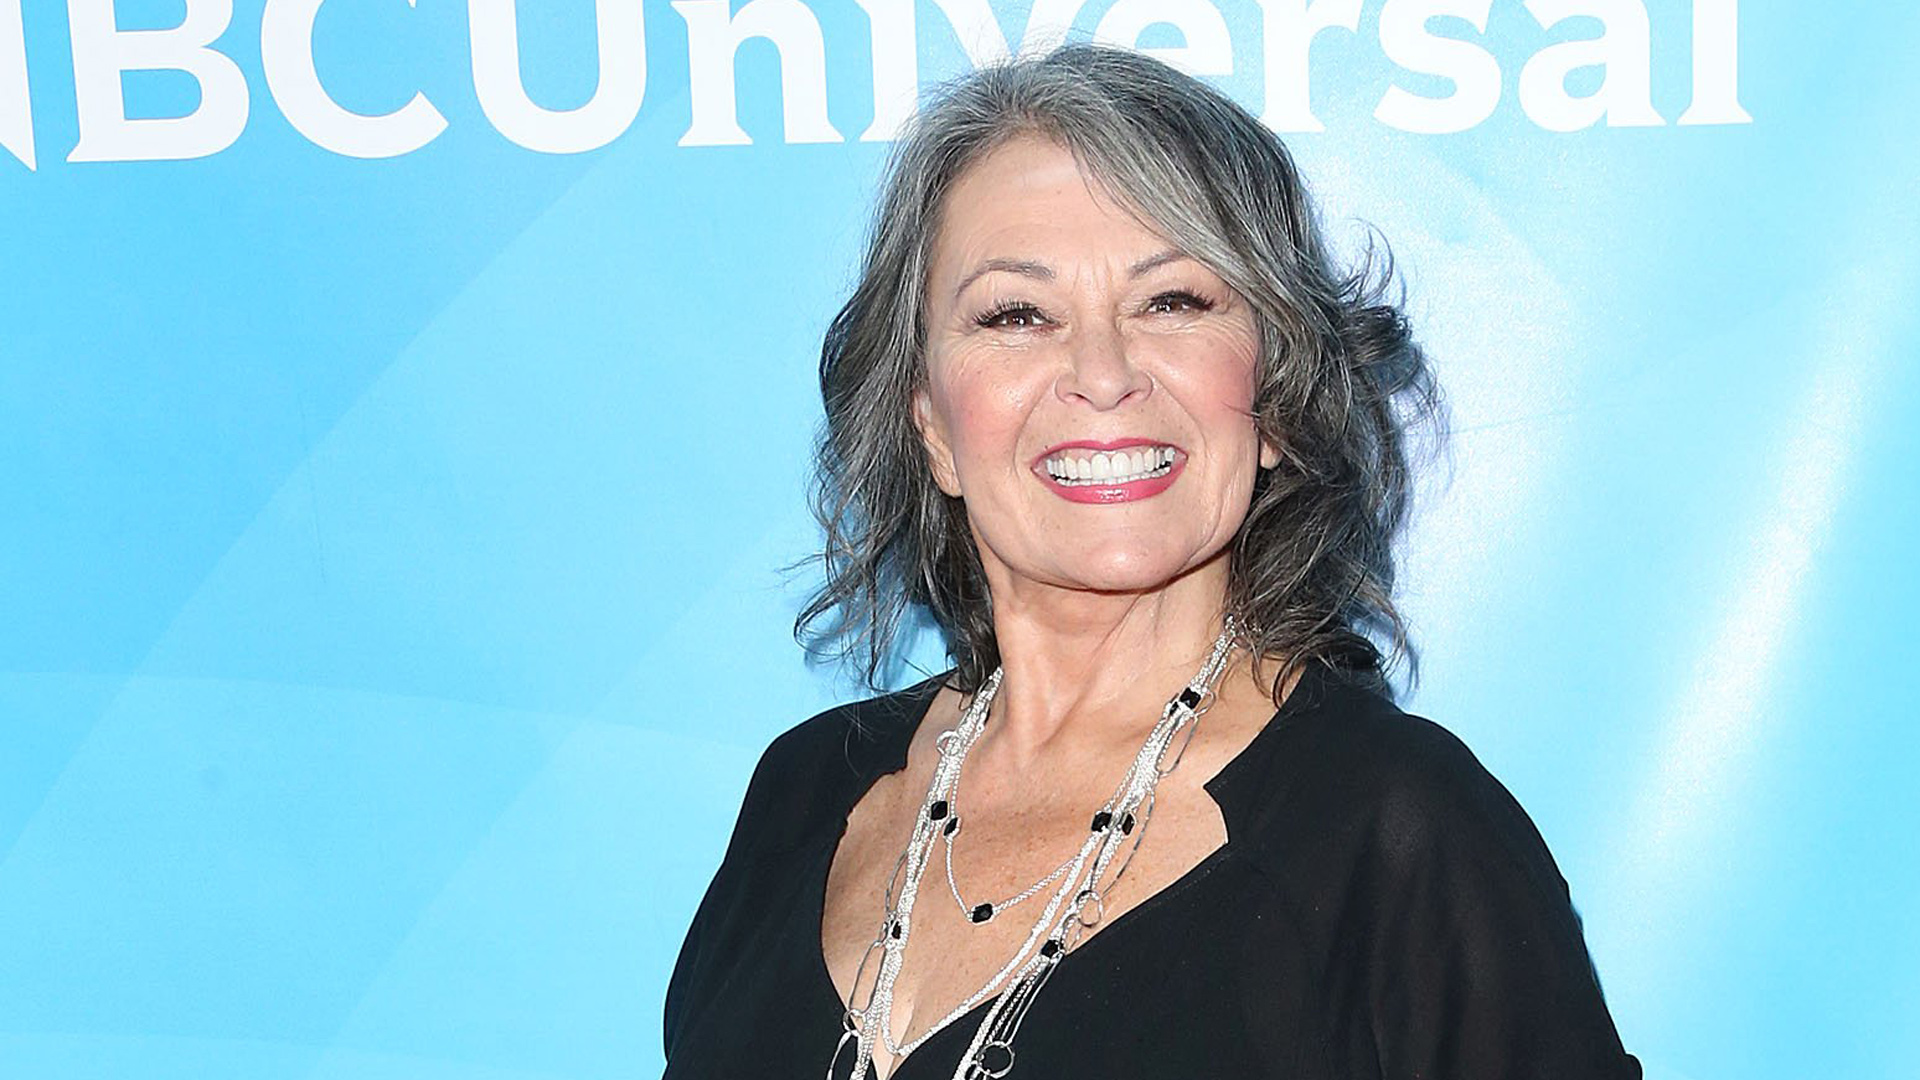 Roseanne Barr attacks #MeToo victims in controversial new interview